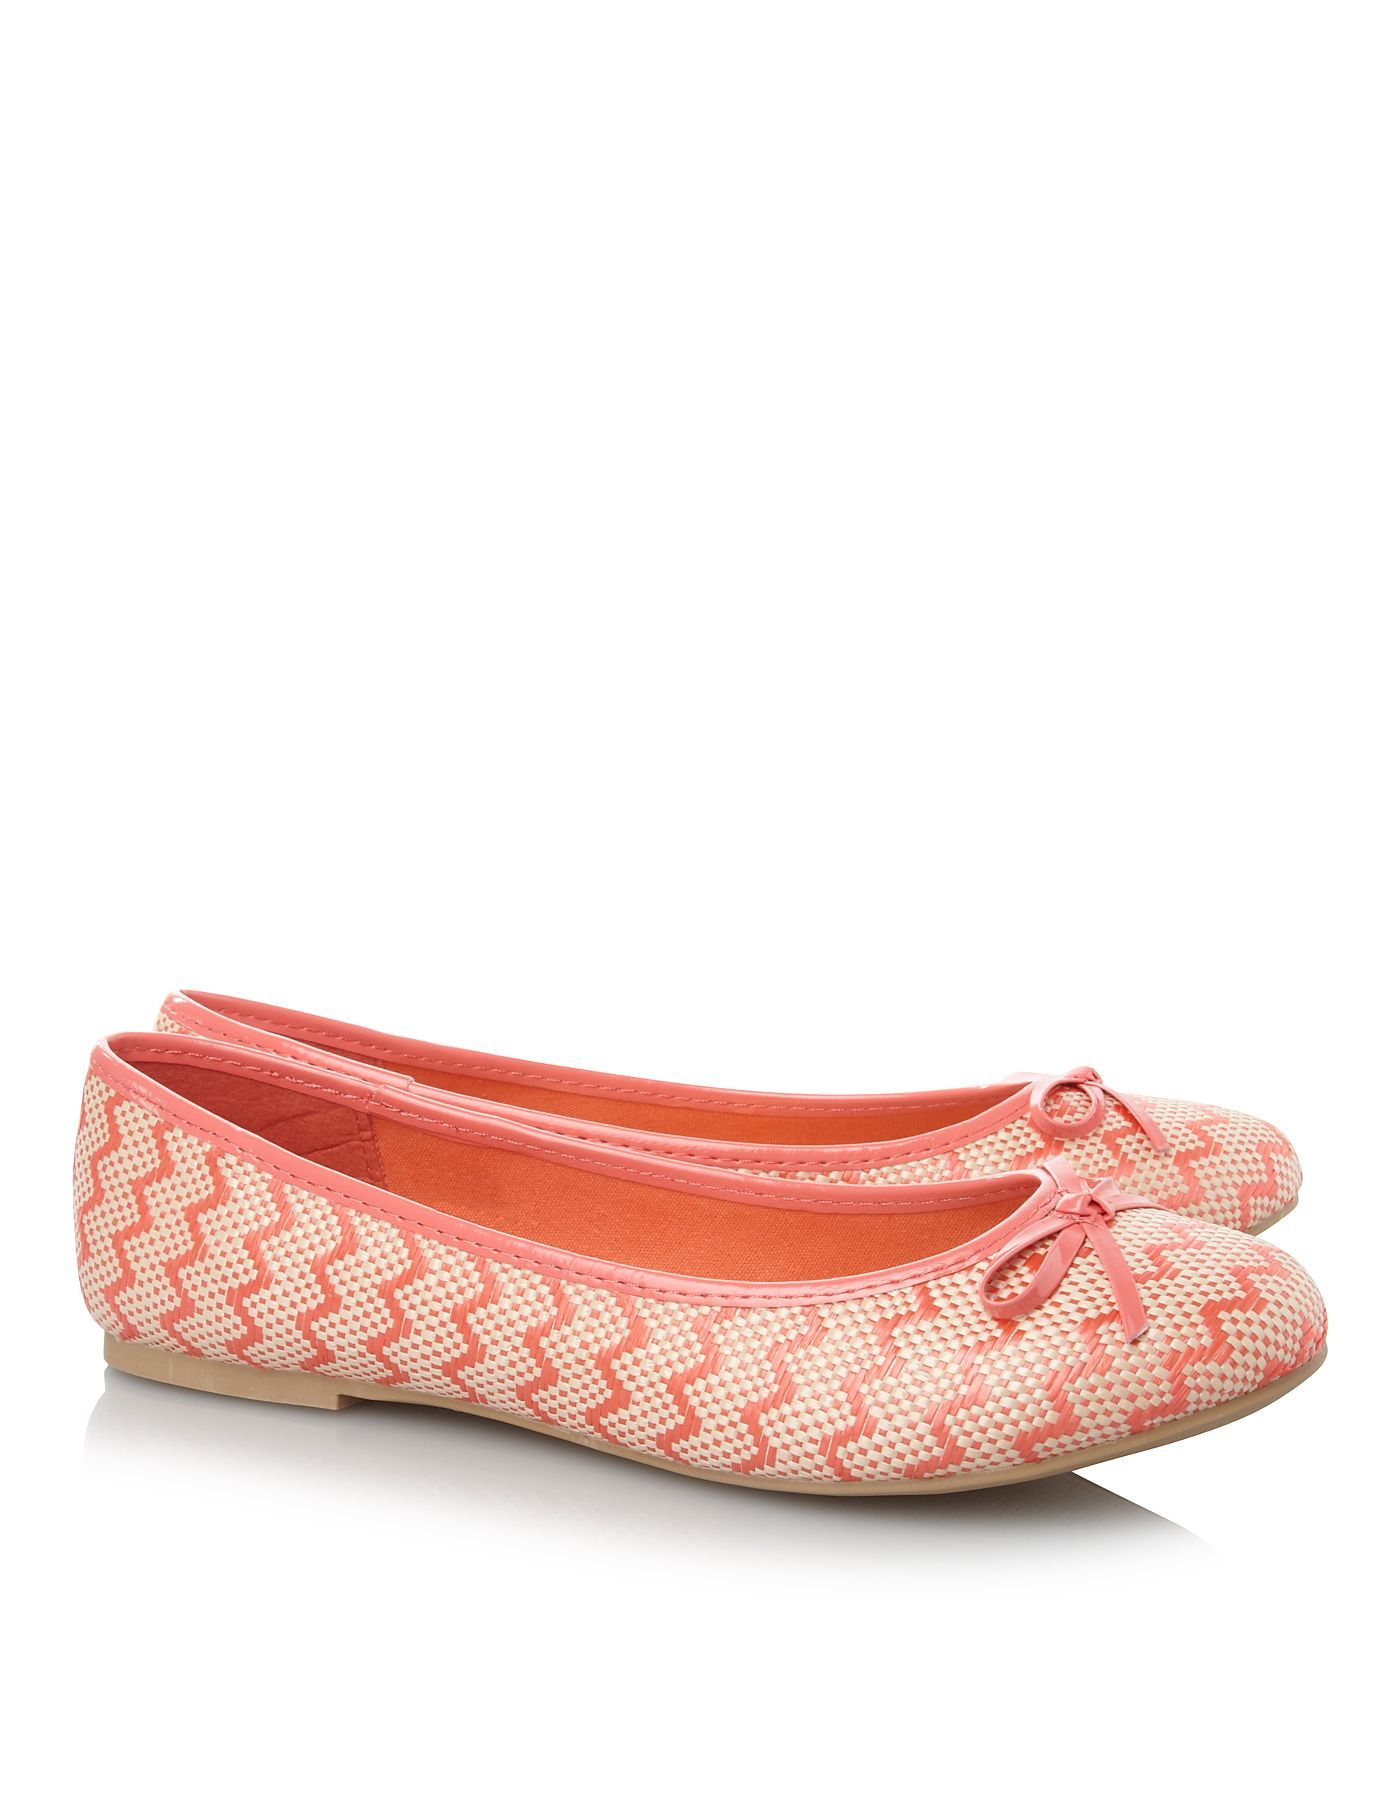 asda george women's flat shoes